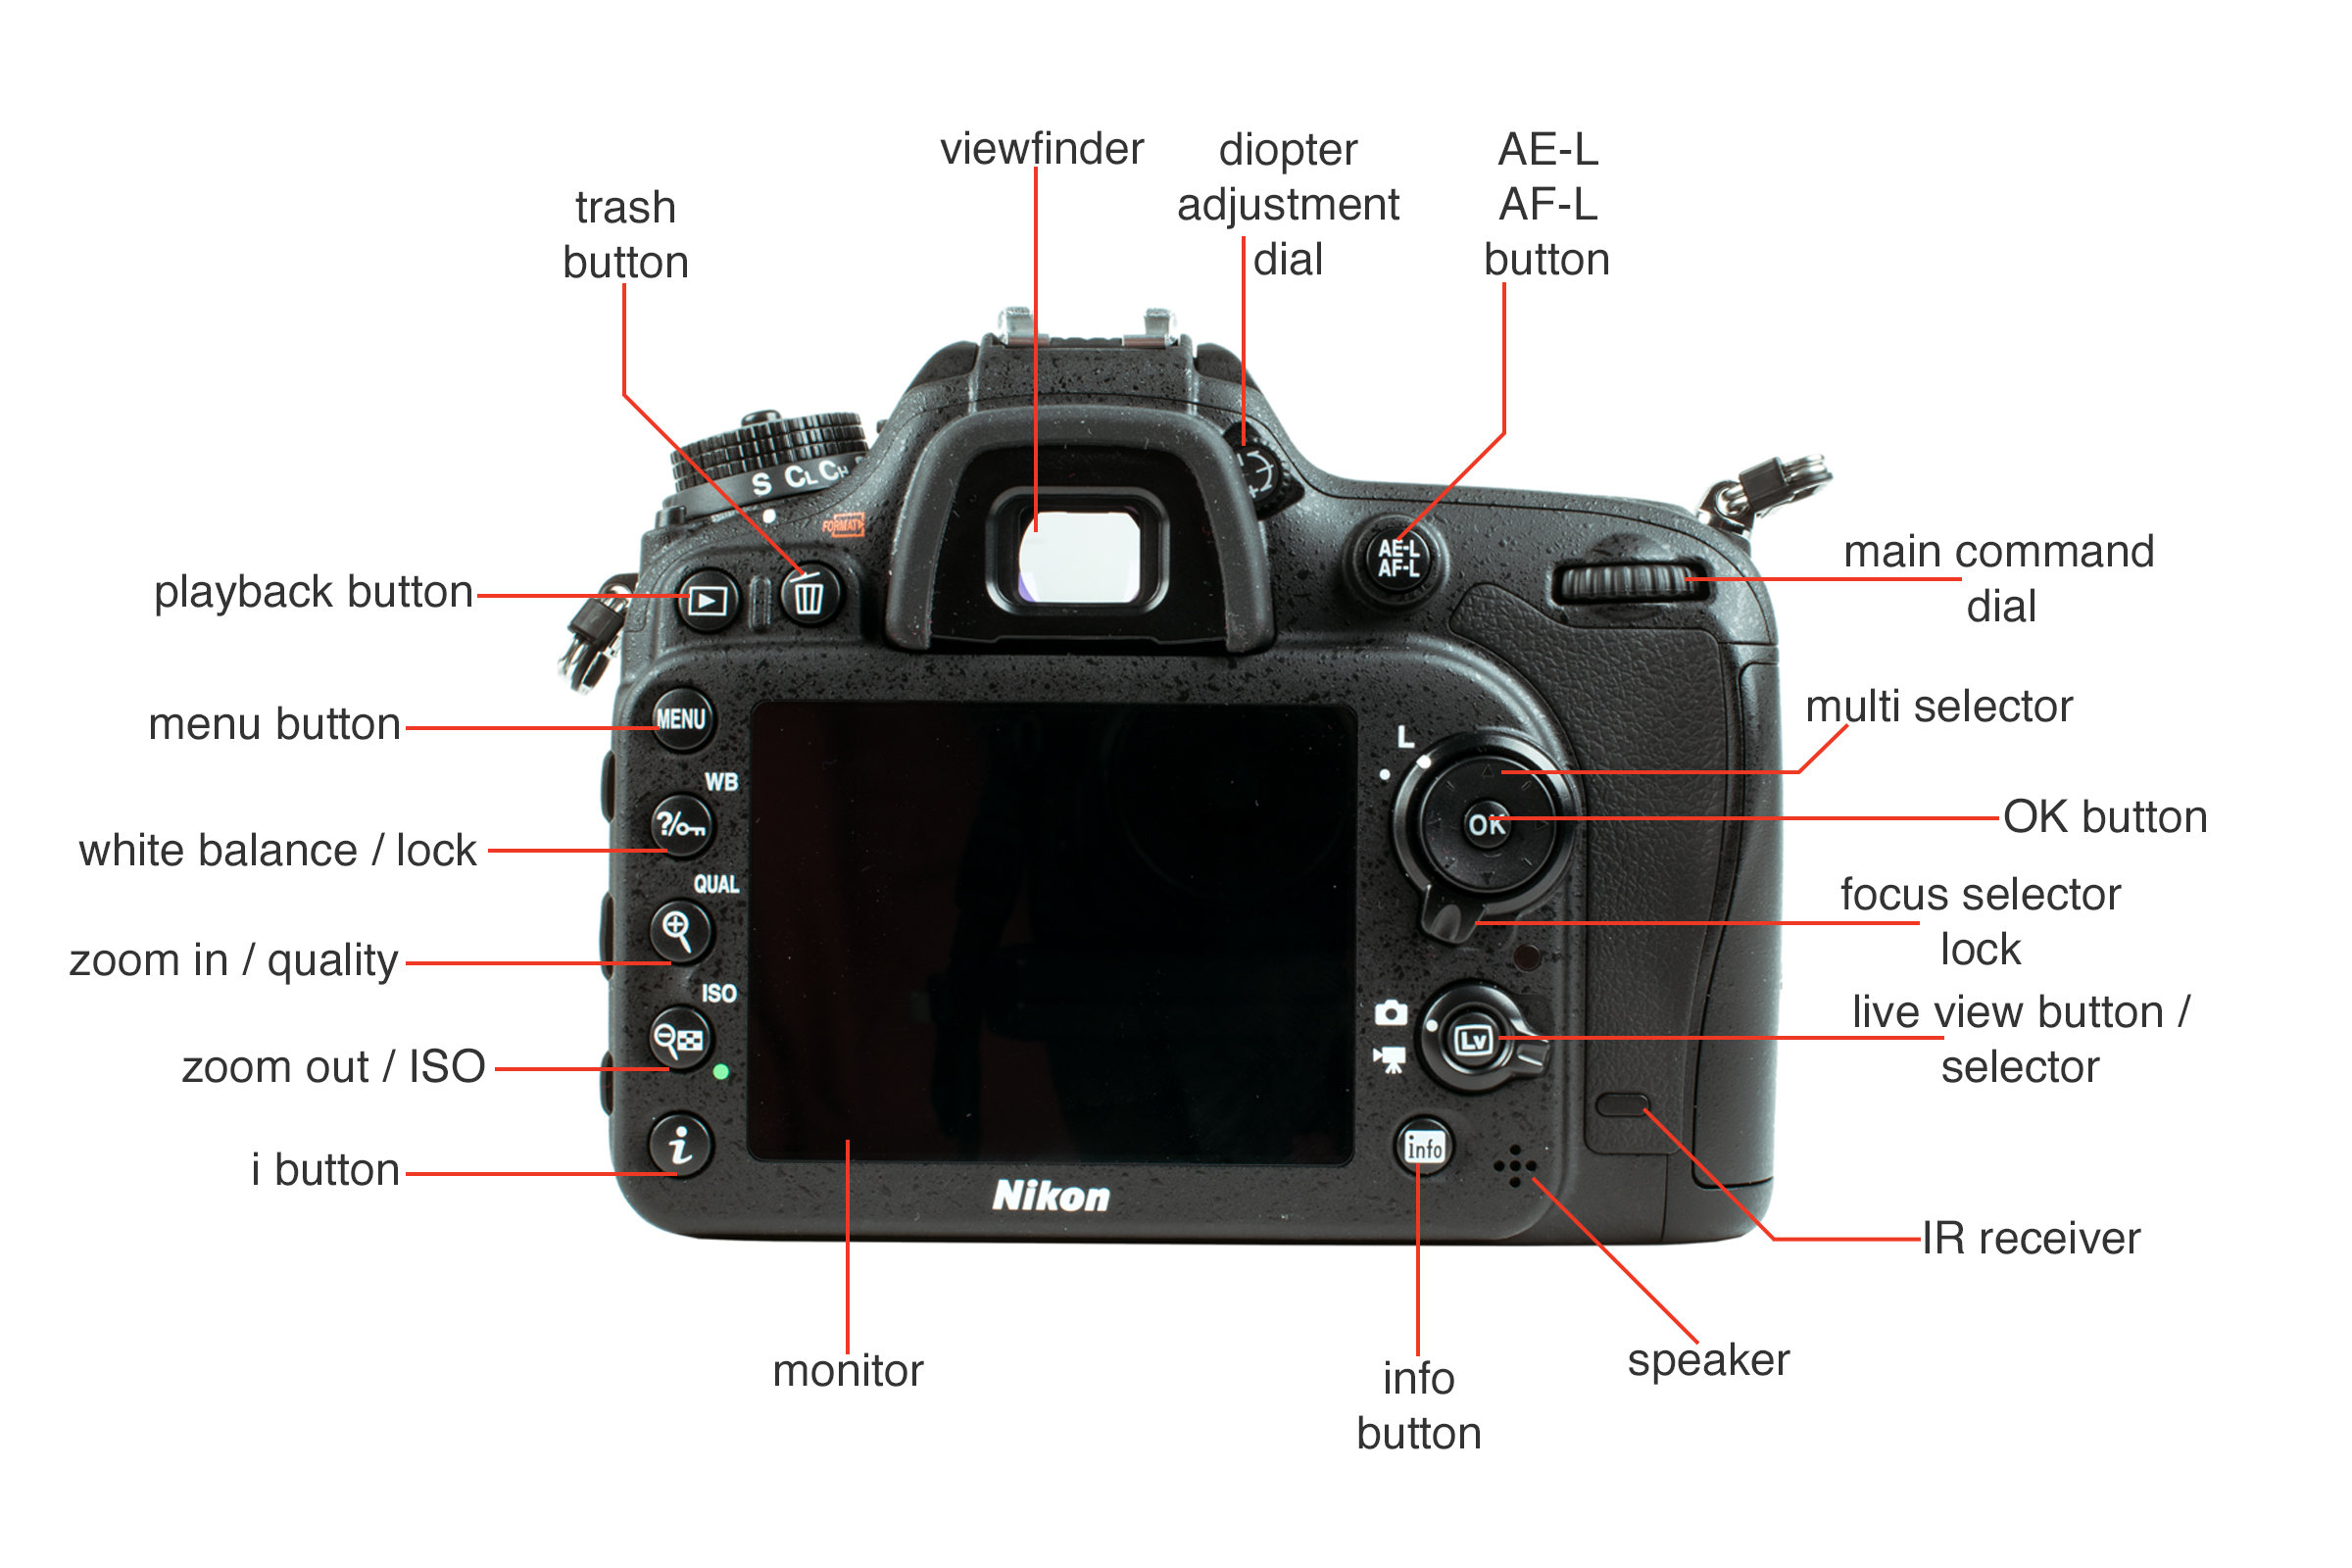 Rear view of the Nikon D7200.